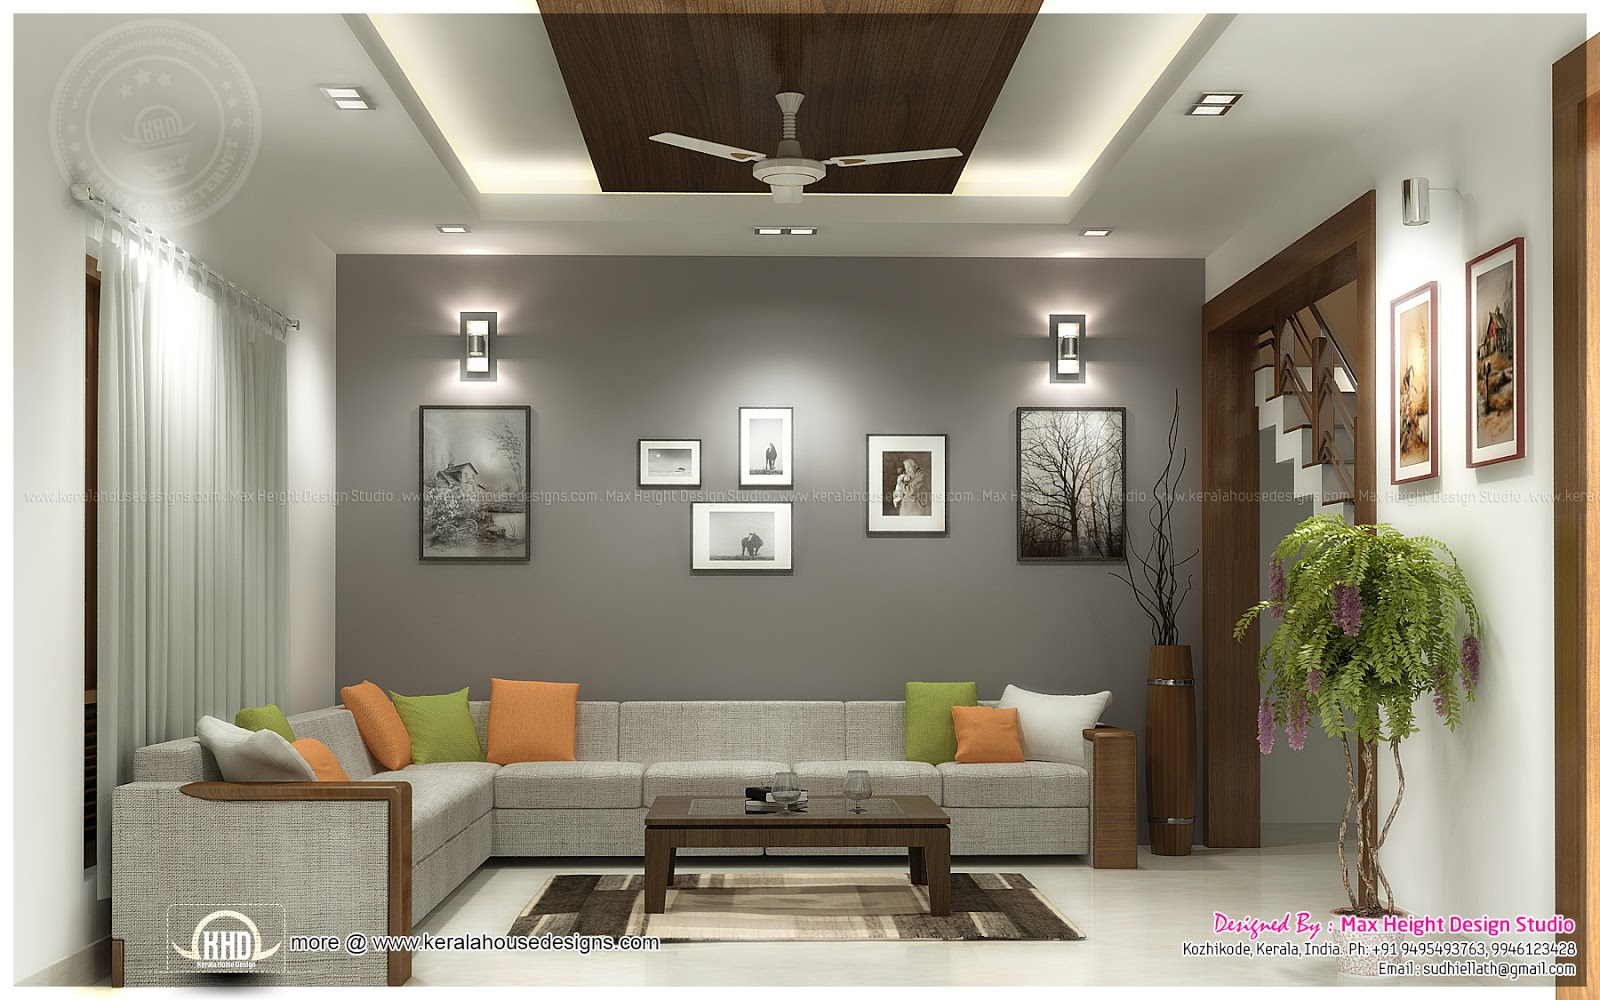 Beautiful interior ideas for home kerala home design and for House interior design photos